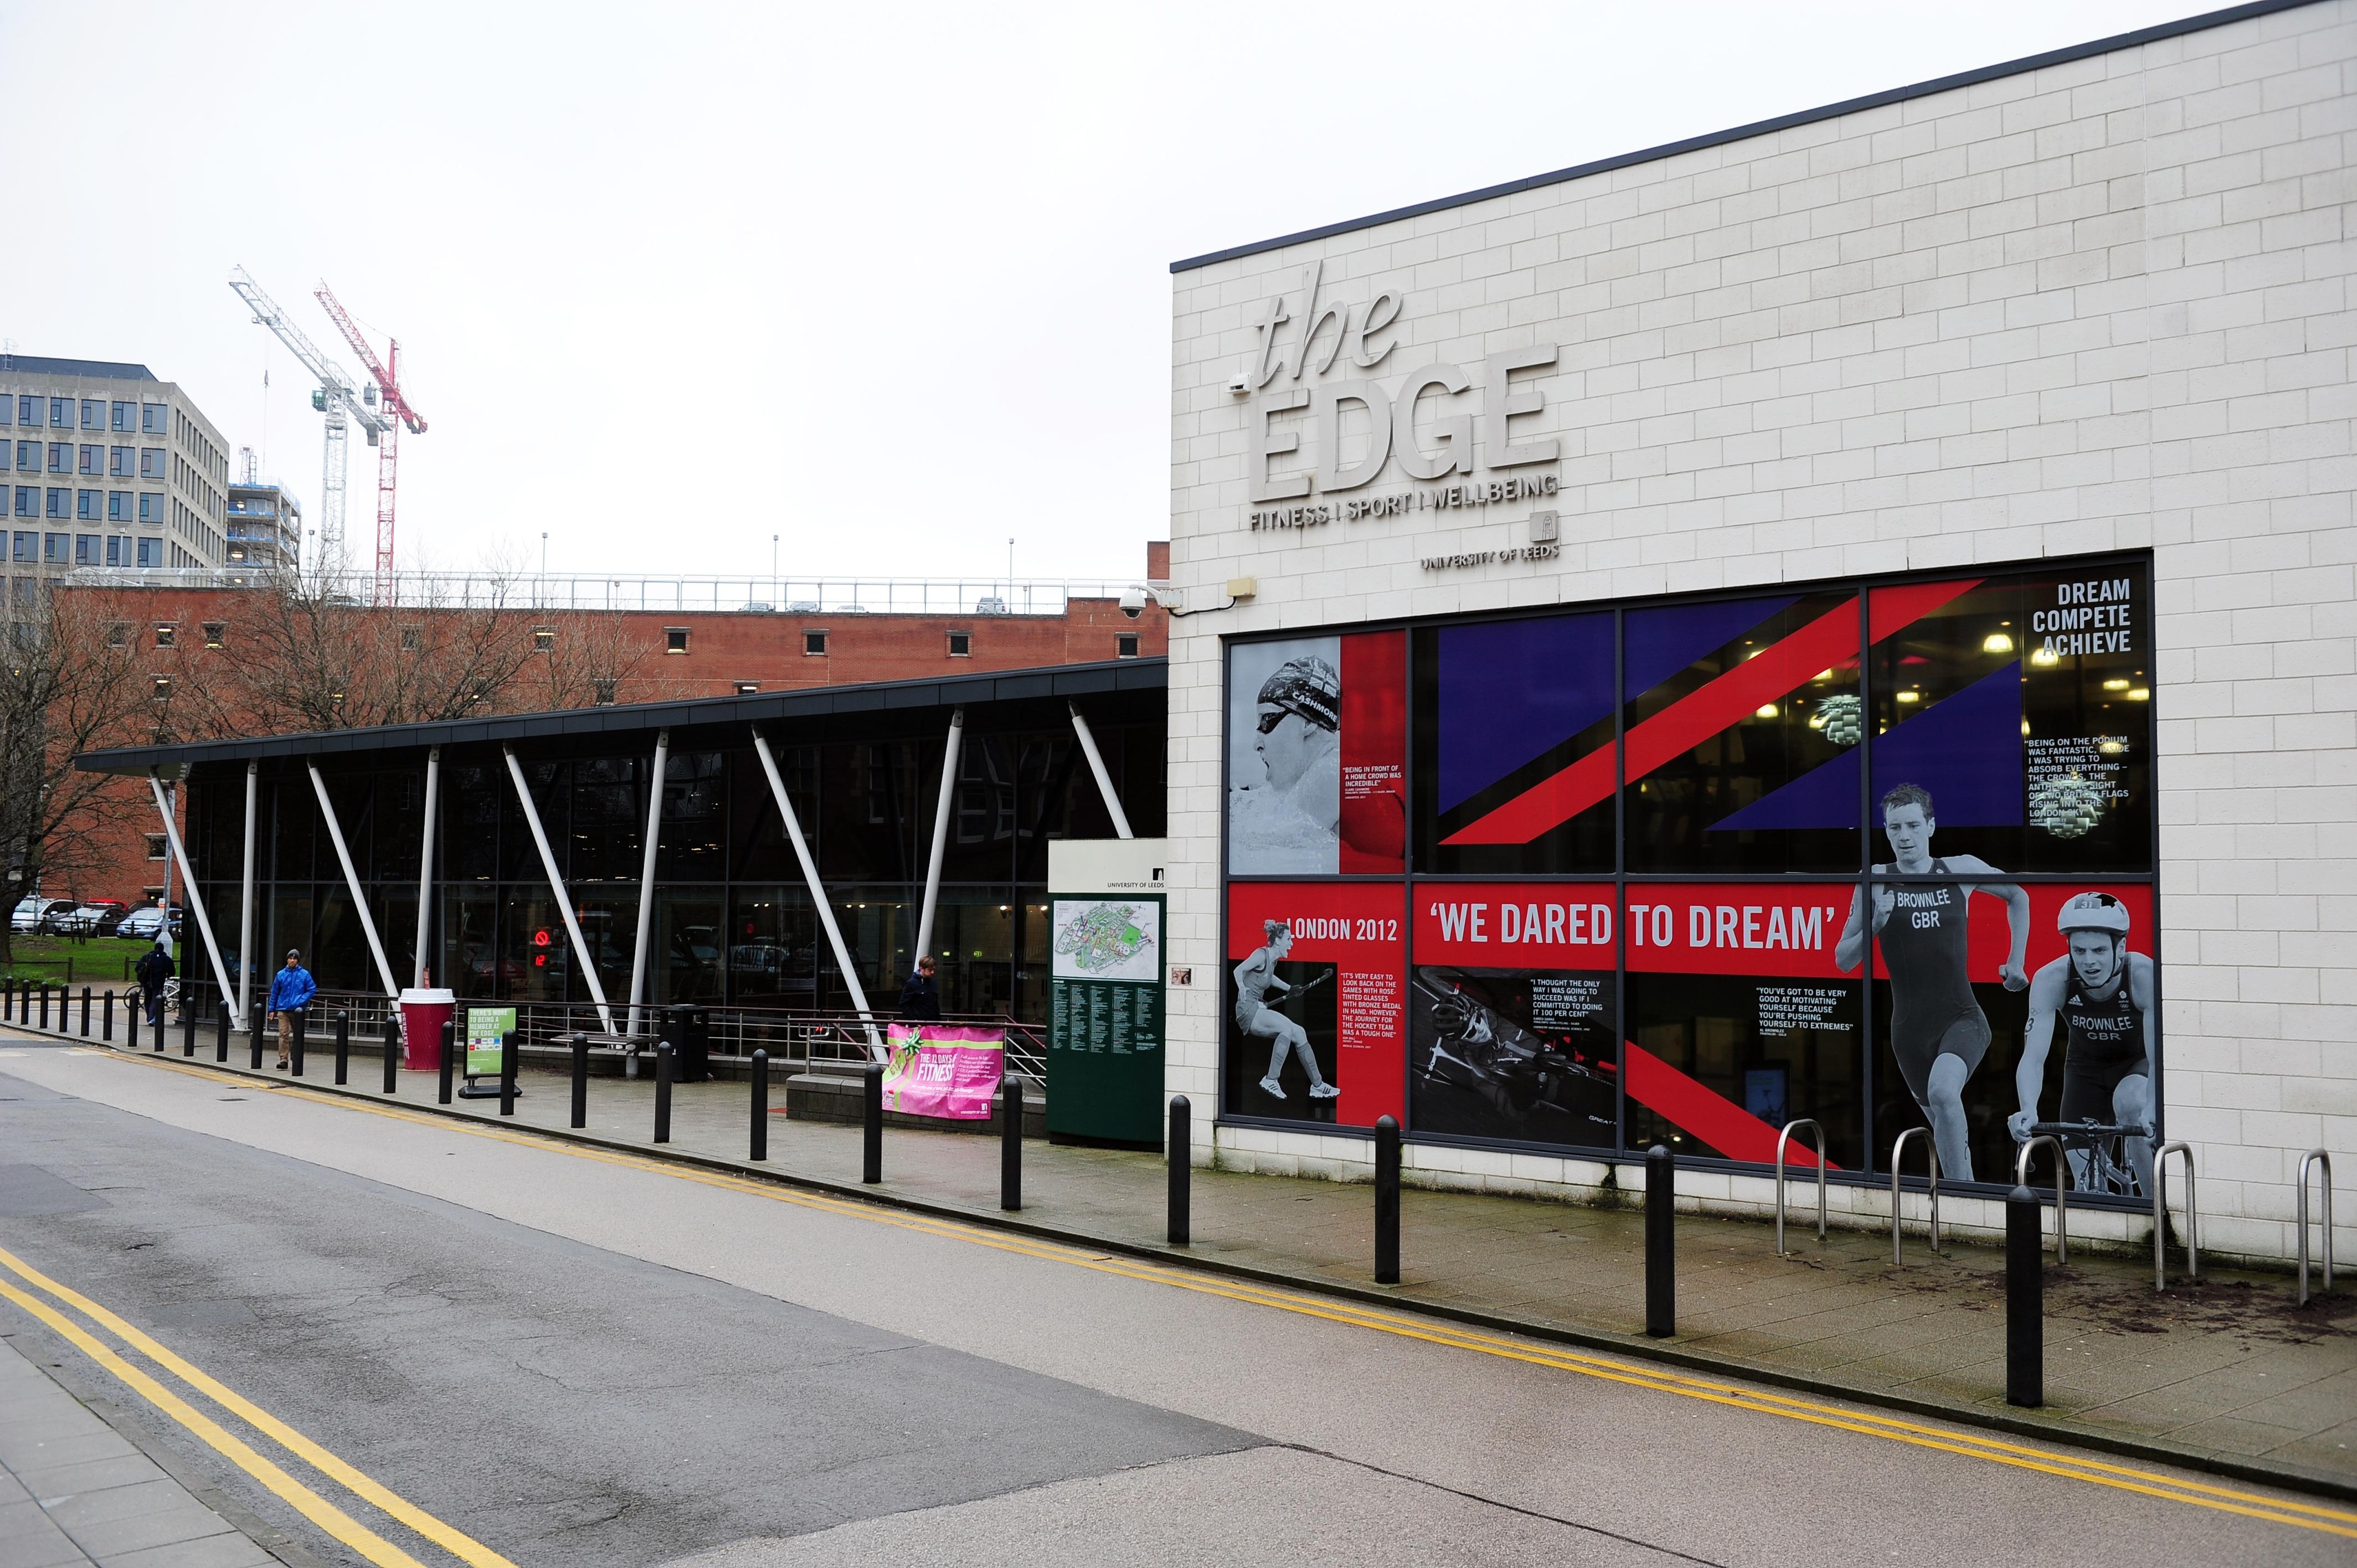 University of Leeds will be home to training hub for Rugby League World Cup 2021